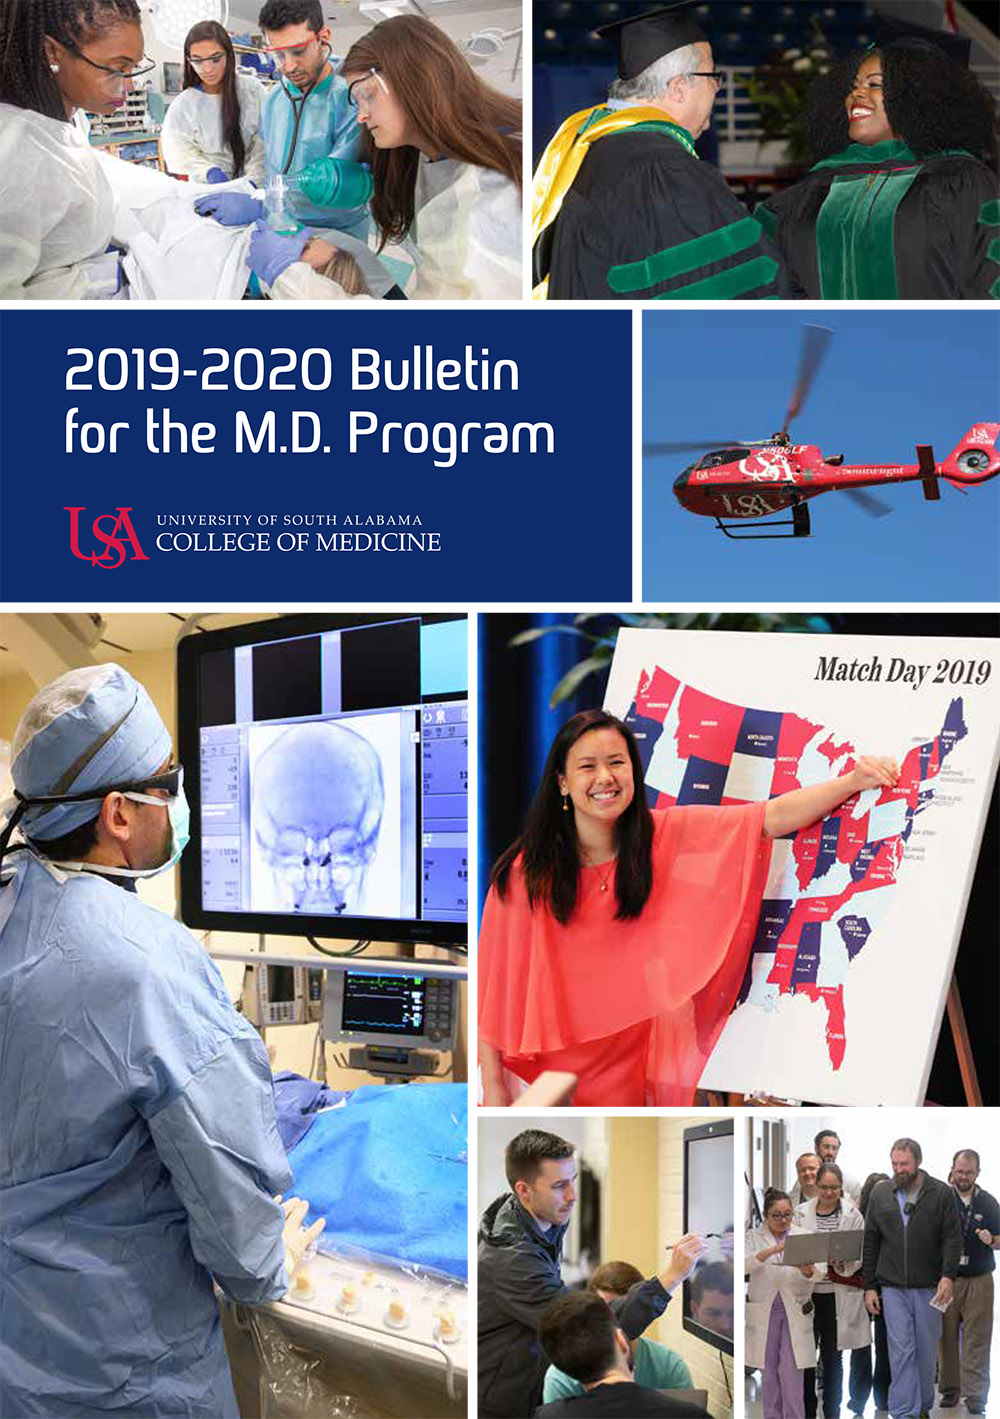 Cover of the 2019-2020 Bulletin for the M.D. Program